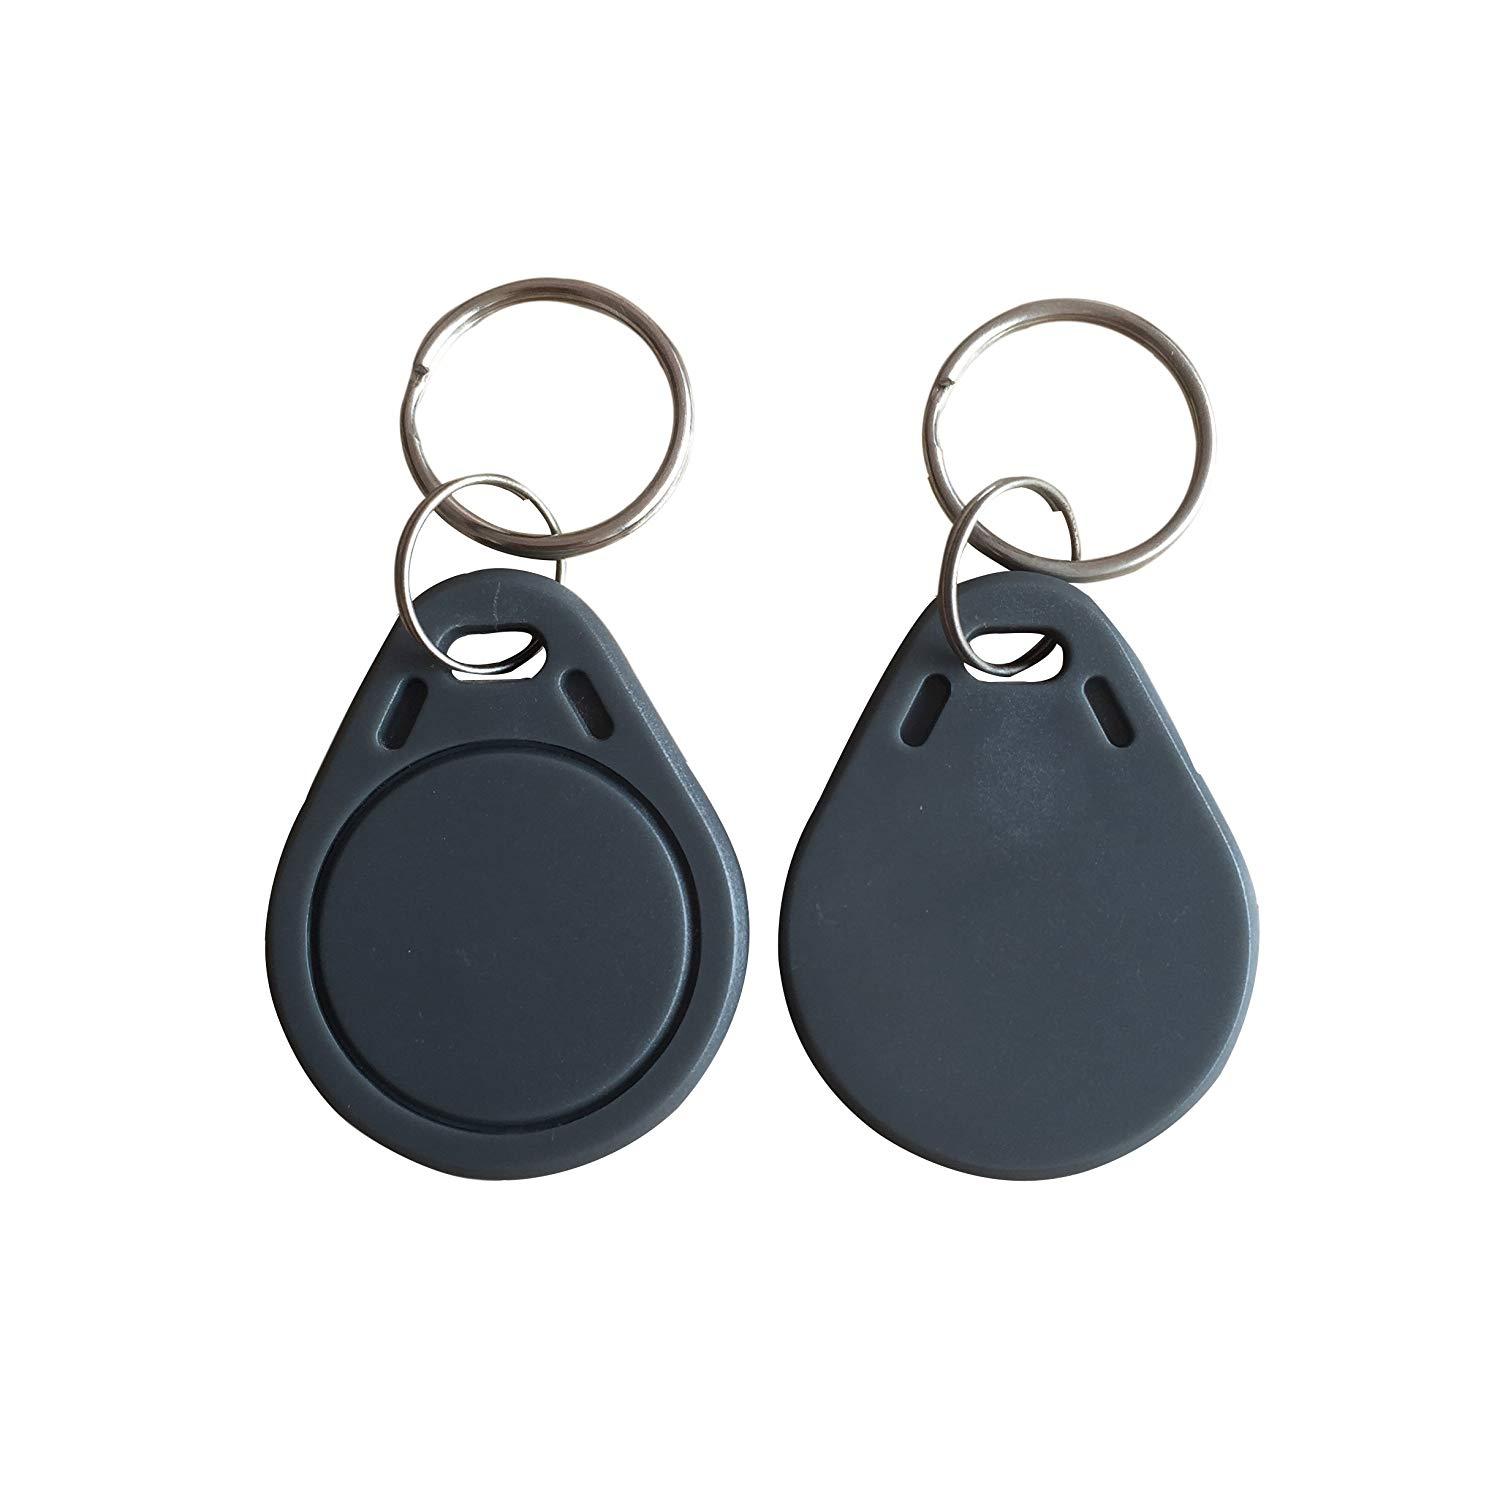 YARONGTECH MIFARE Classic® 1K RFID Porte-clés Tag 13.56MHz ISO14443A -10pcs